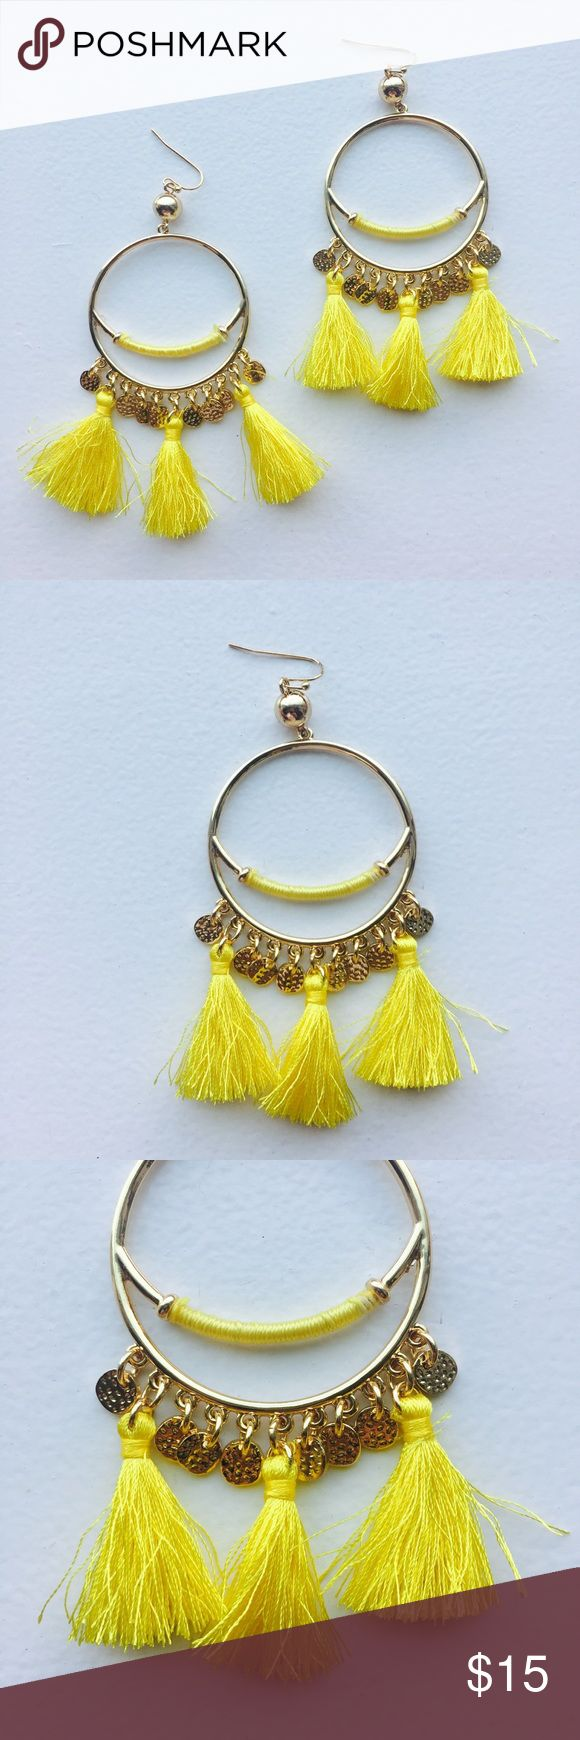 Yellow tassel earrings Yellow Chandelier tassel earrings. It has tiny medallions.  Love the vibrant yellow color of the tassel and the threading. The Great statement piece. Boho style. Brand new. Jewelry Earrings